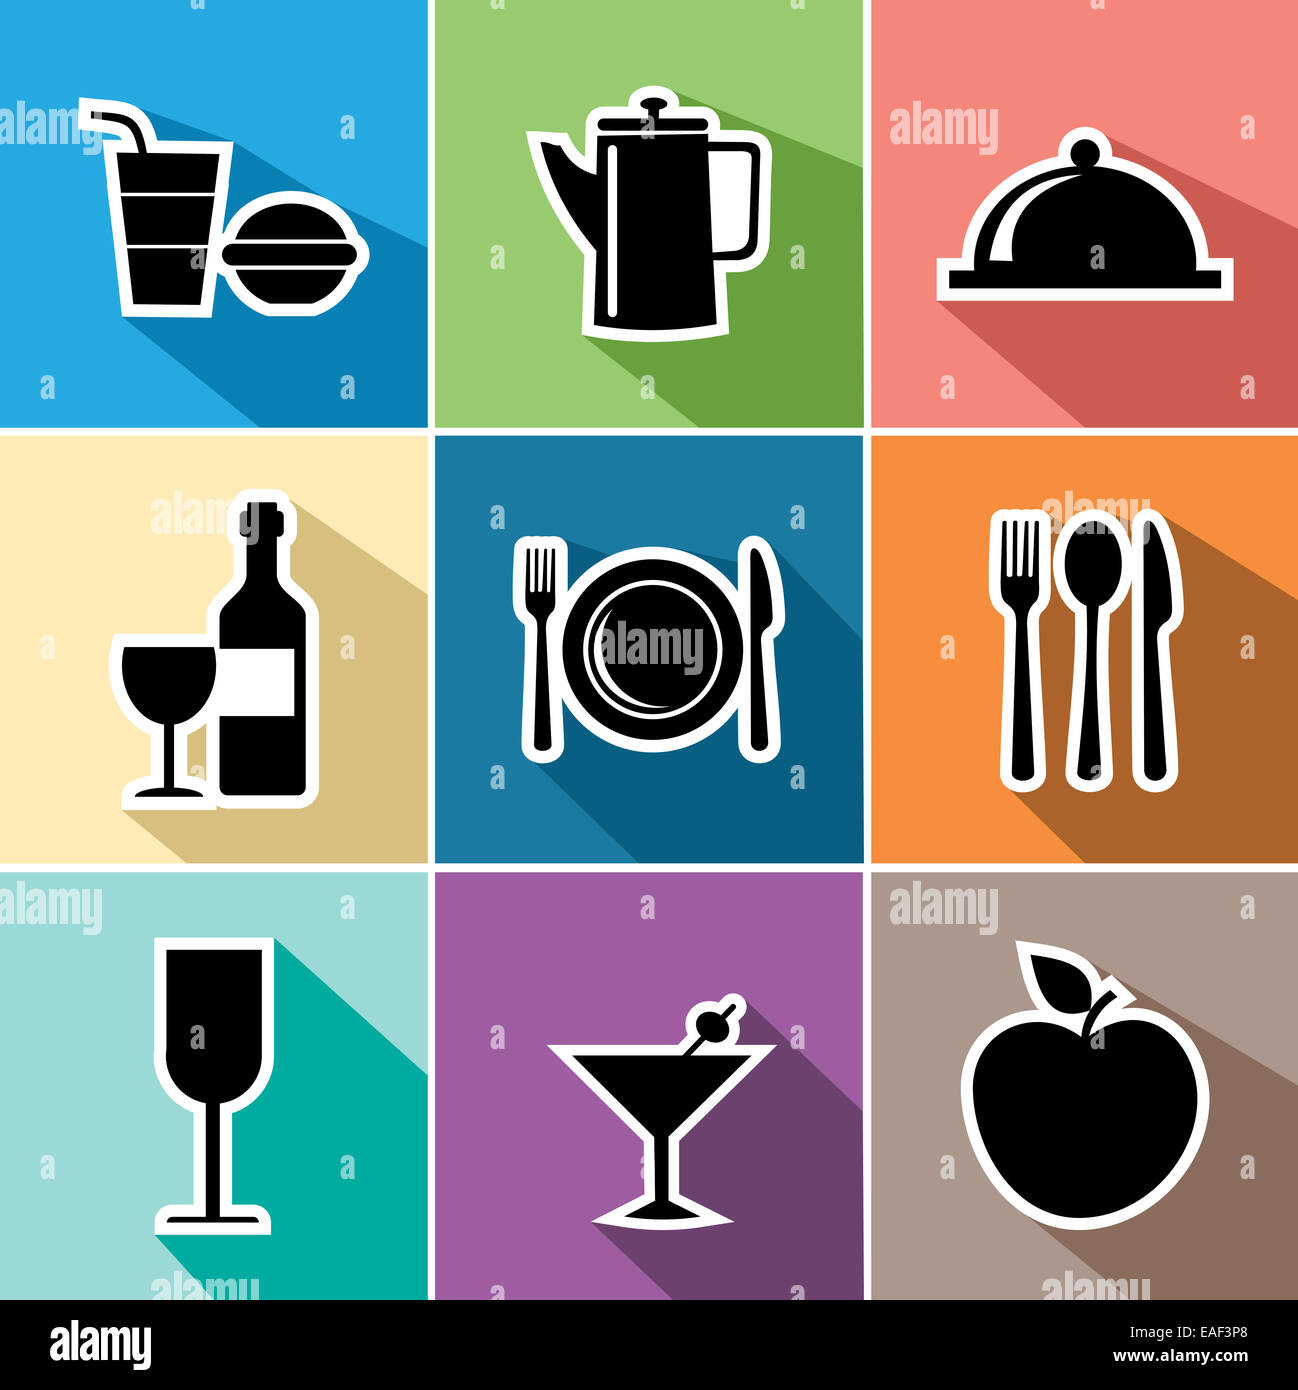 Food and restaurant set of flat icons design website